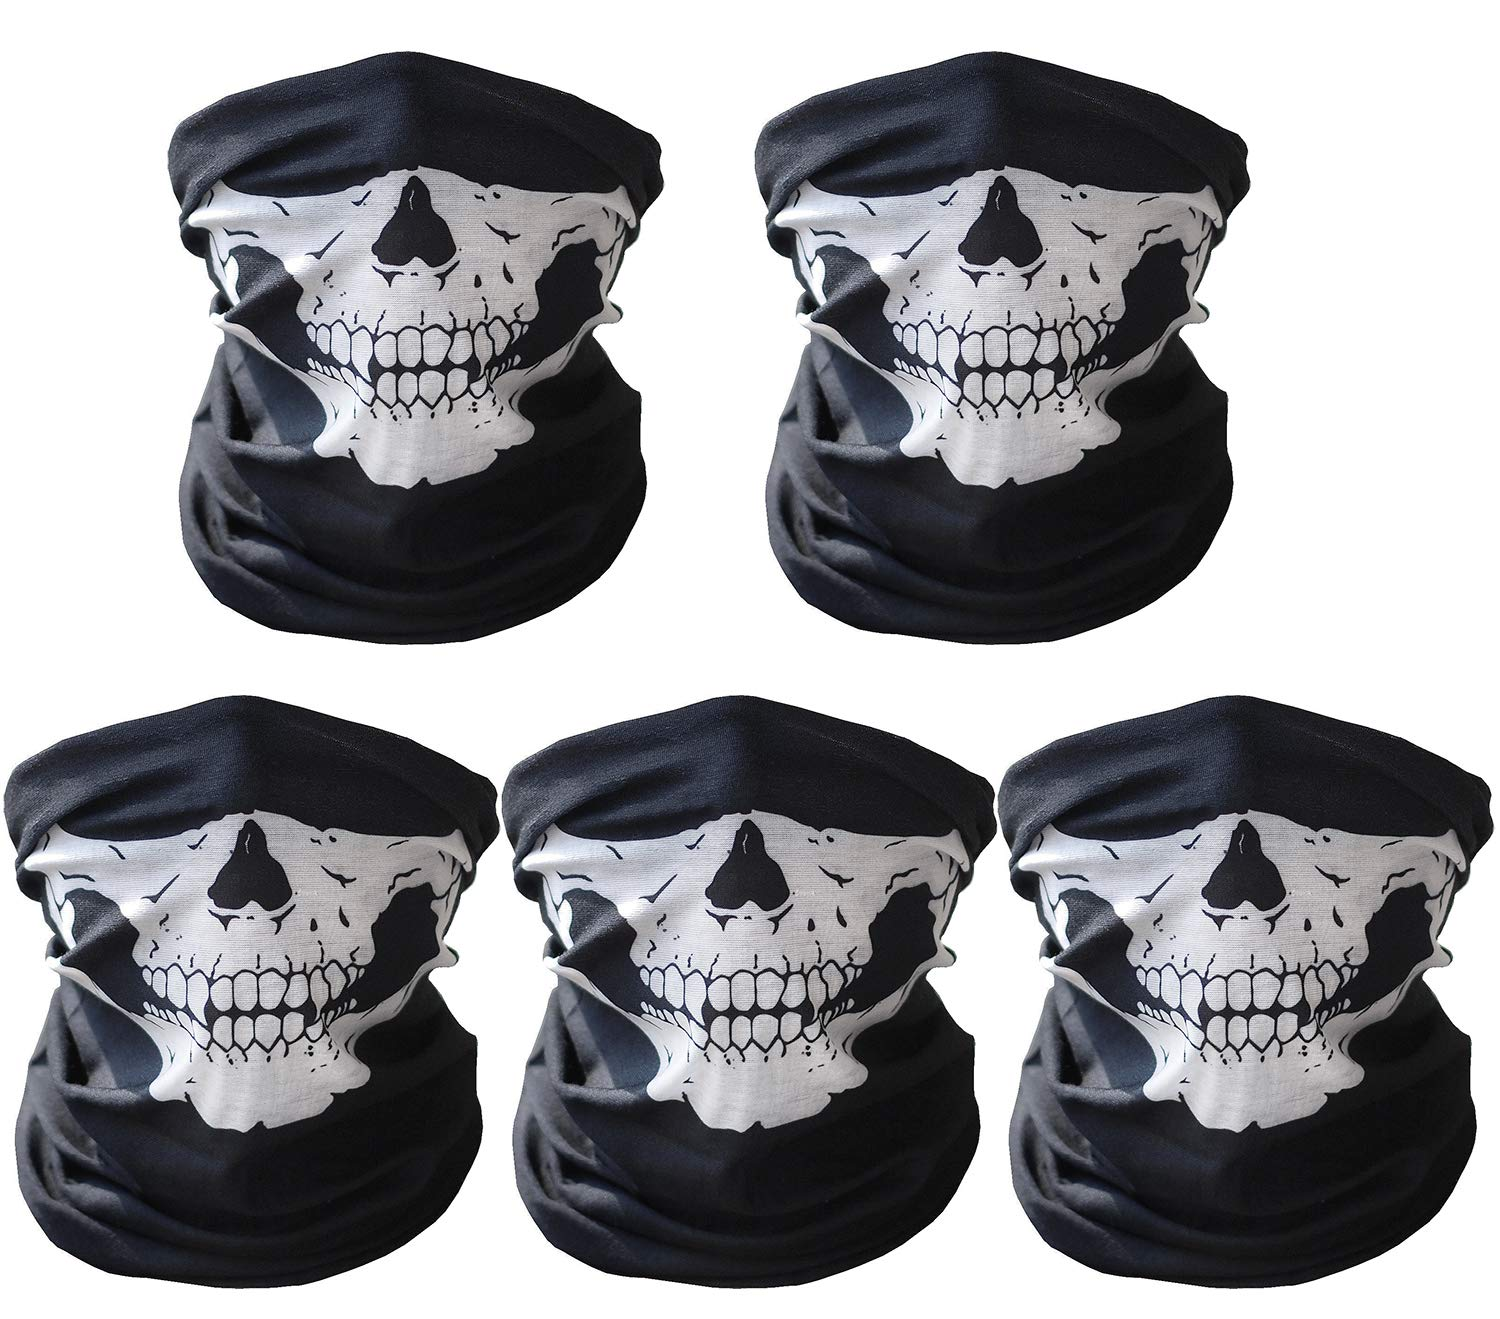 CandyHome 5 Pcs Motorcycle Face Mask, Windproof Seamless Tube Half Face Mask for Bike Riding Fishing Hiking (Black/White) SKU-015-1